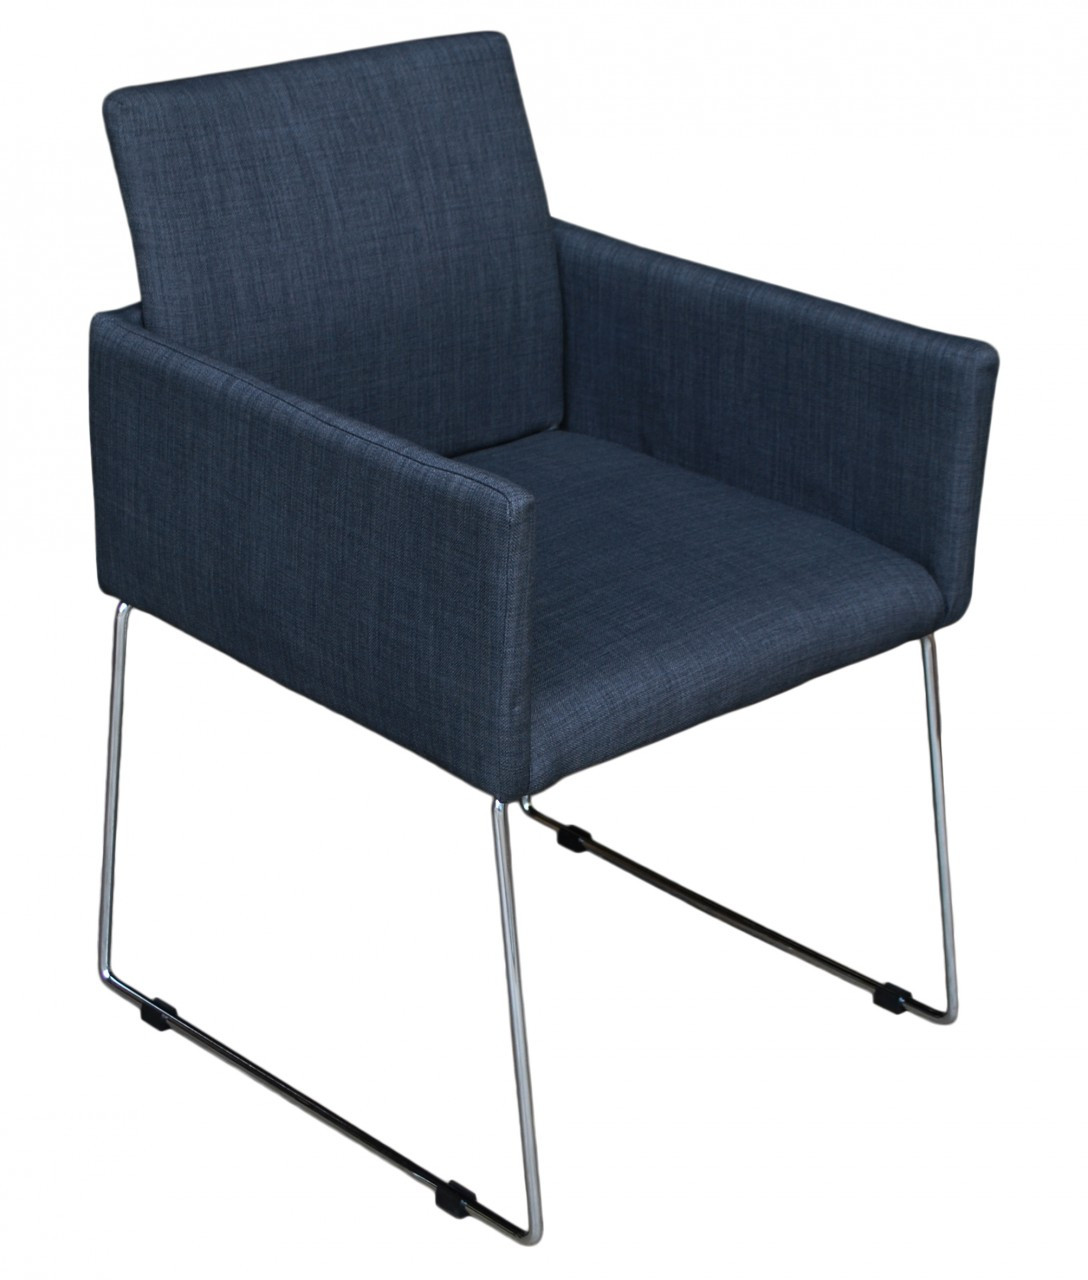 Enna Reception Chair Charcoal Stools Amp Chairs